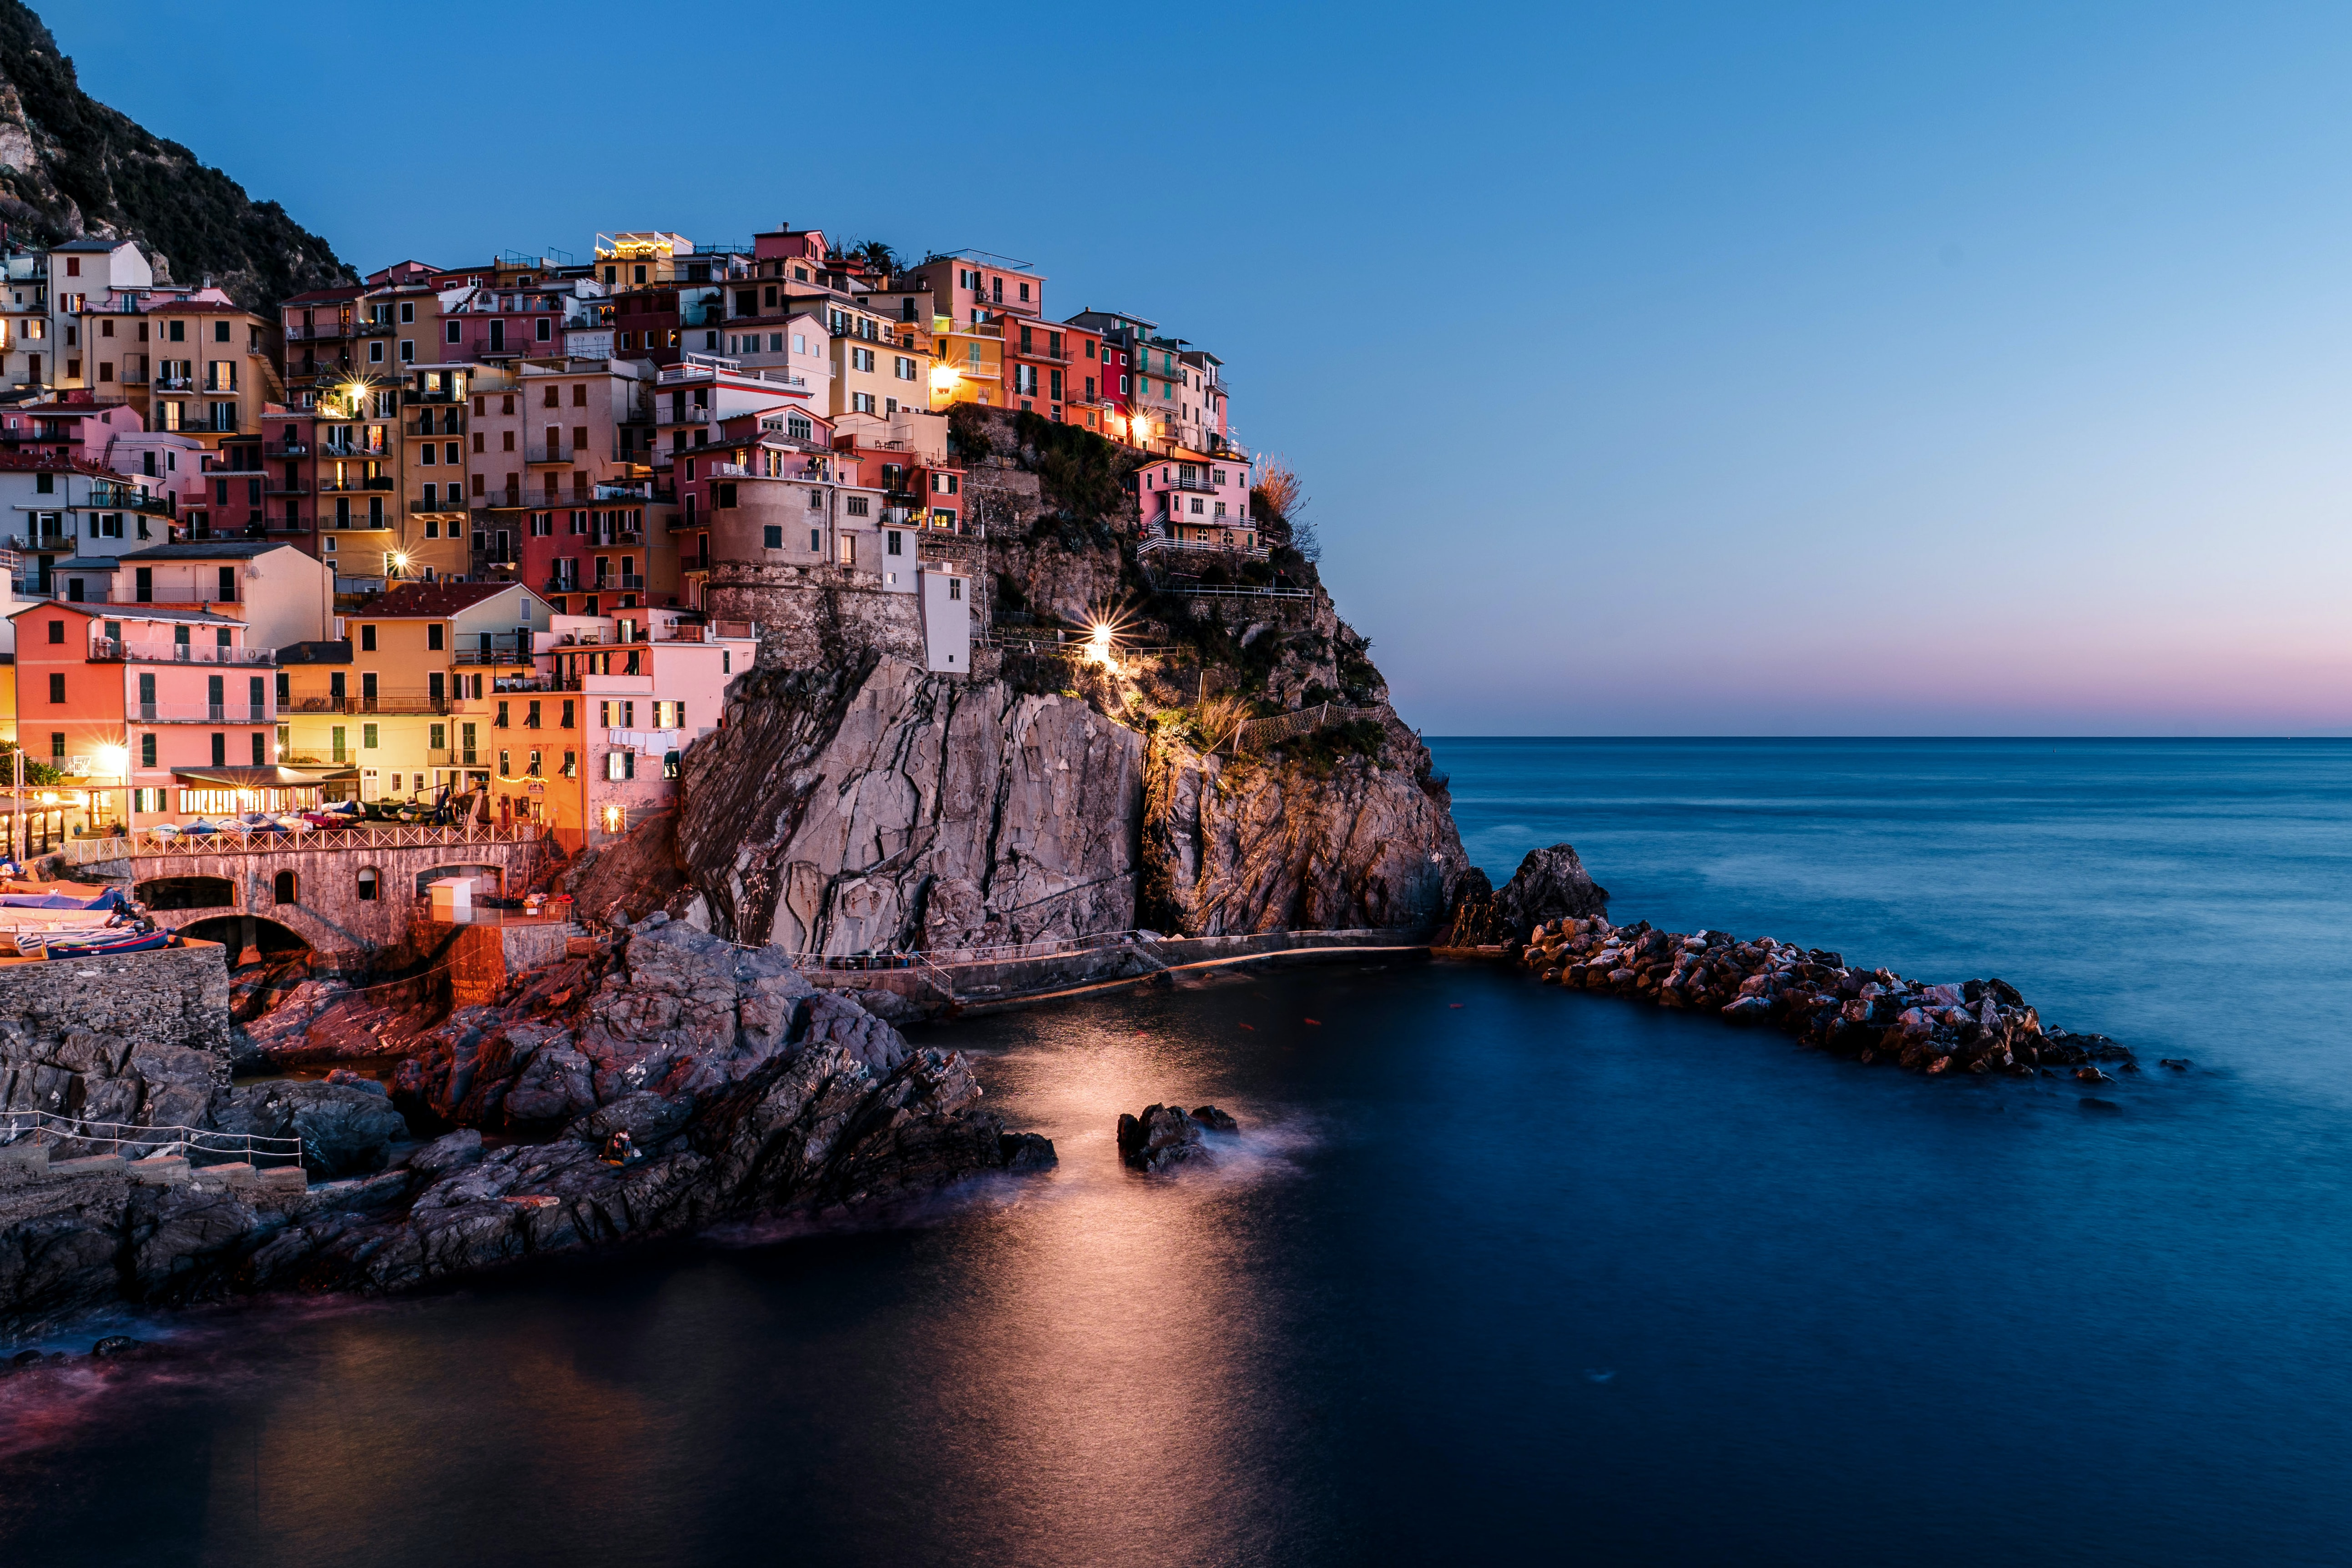 A colorful city on the coast of Italy in the evening